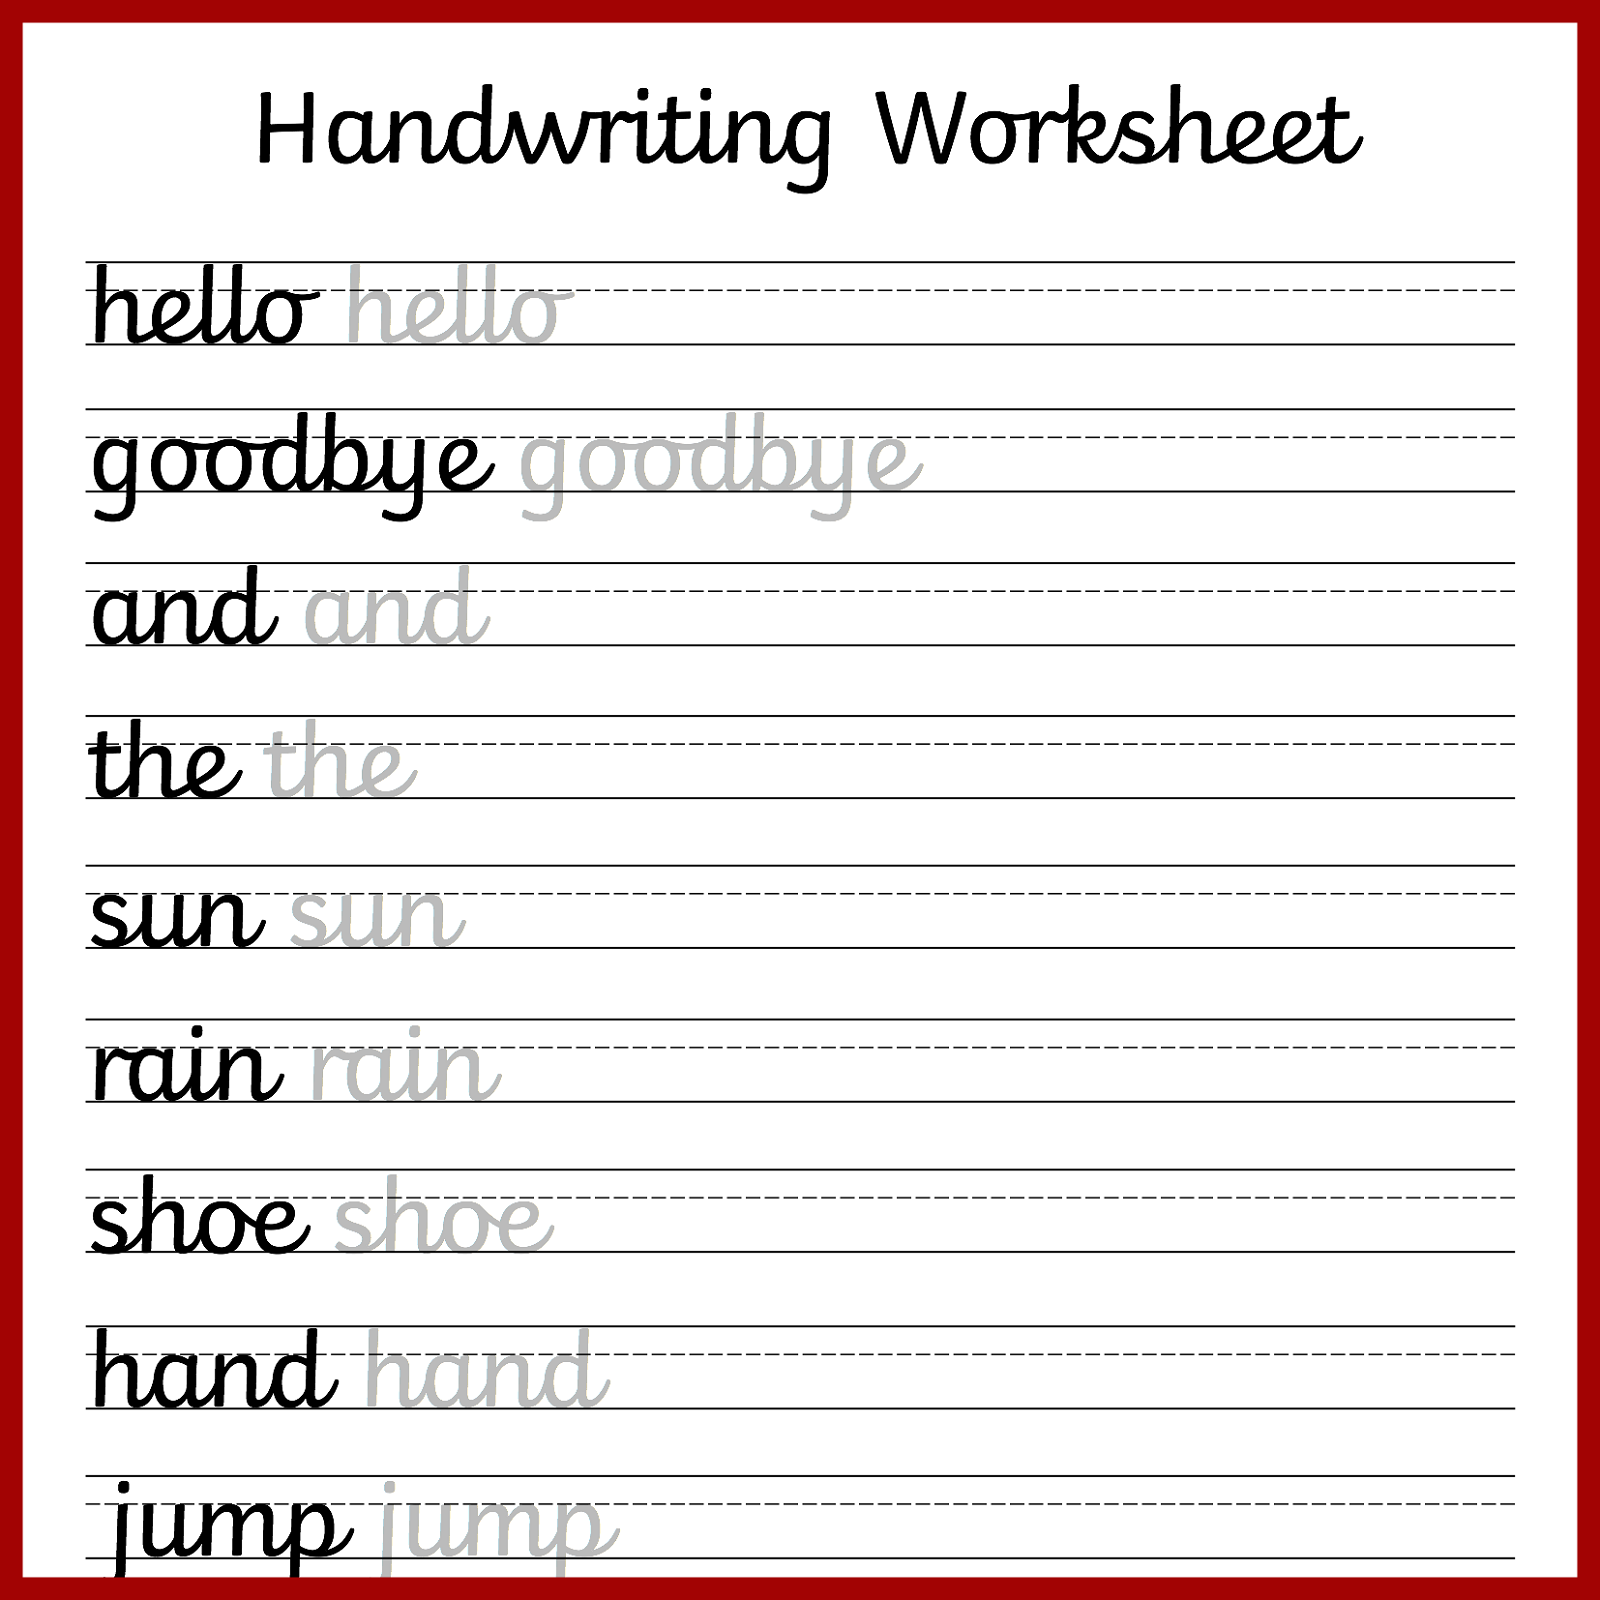 Hand Writing Worksheets For Students